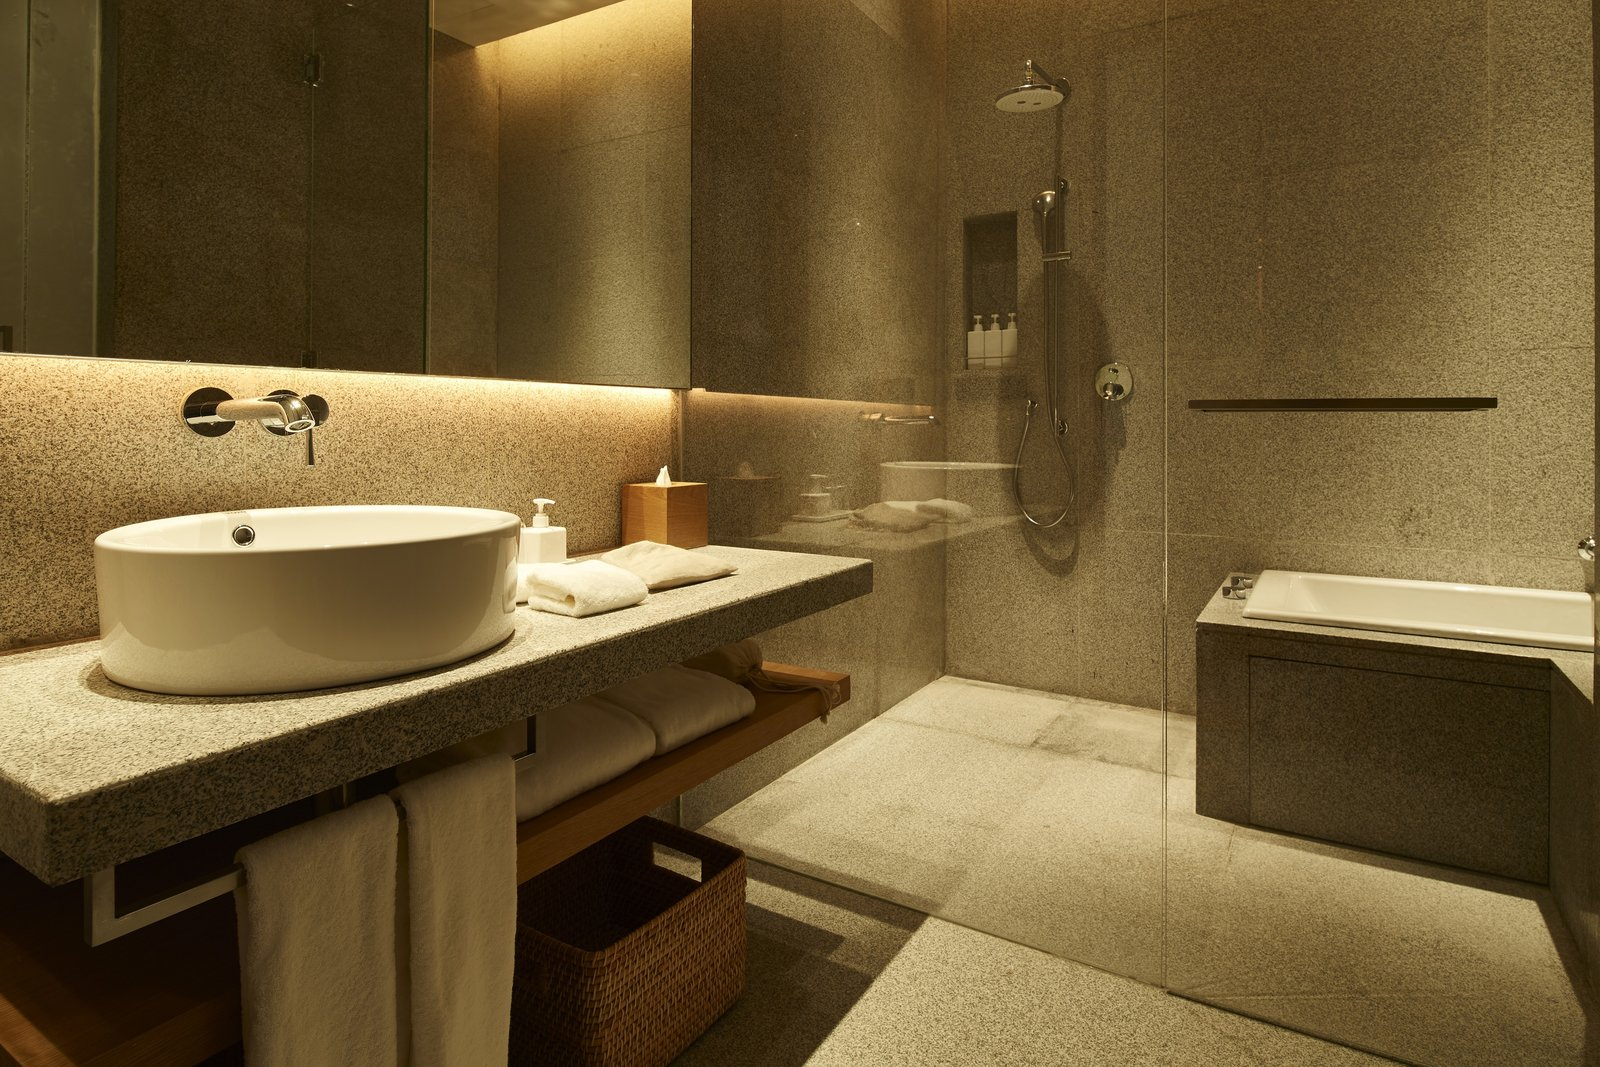 Bath Room, Alcove Tub, Full Shower, Corner Shower, Accent Lighting, and Vessel Sink  Photo 7 of 10 in Be the First to Stay in the New Muji Hotel in Shenzhen